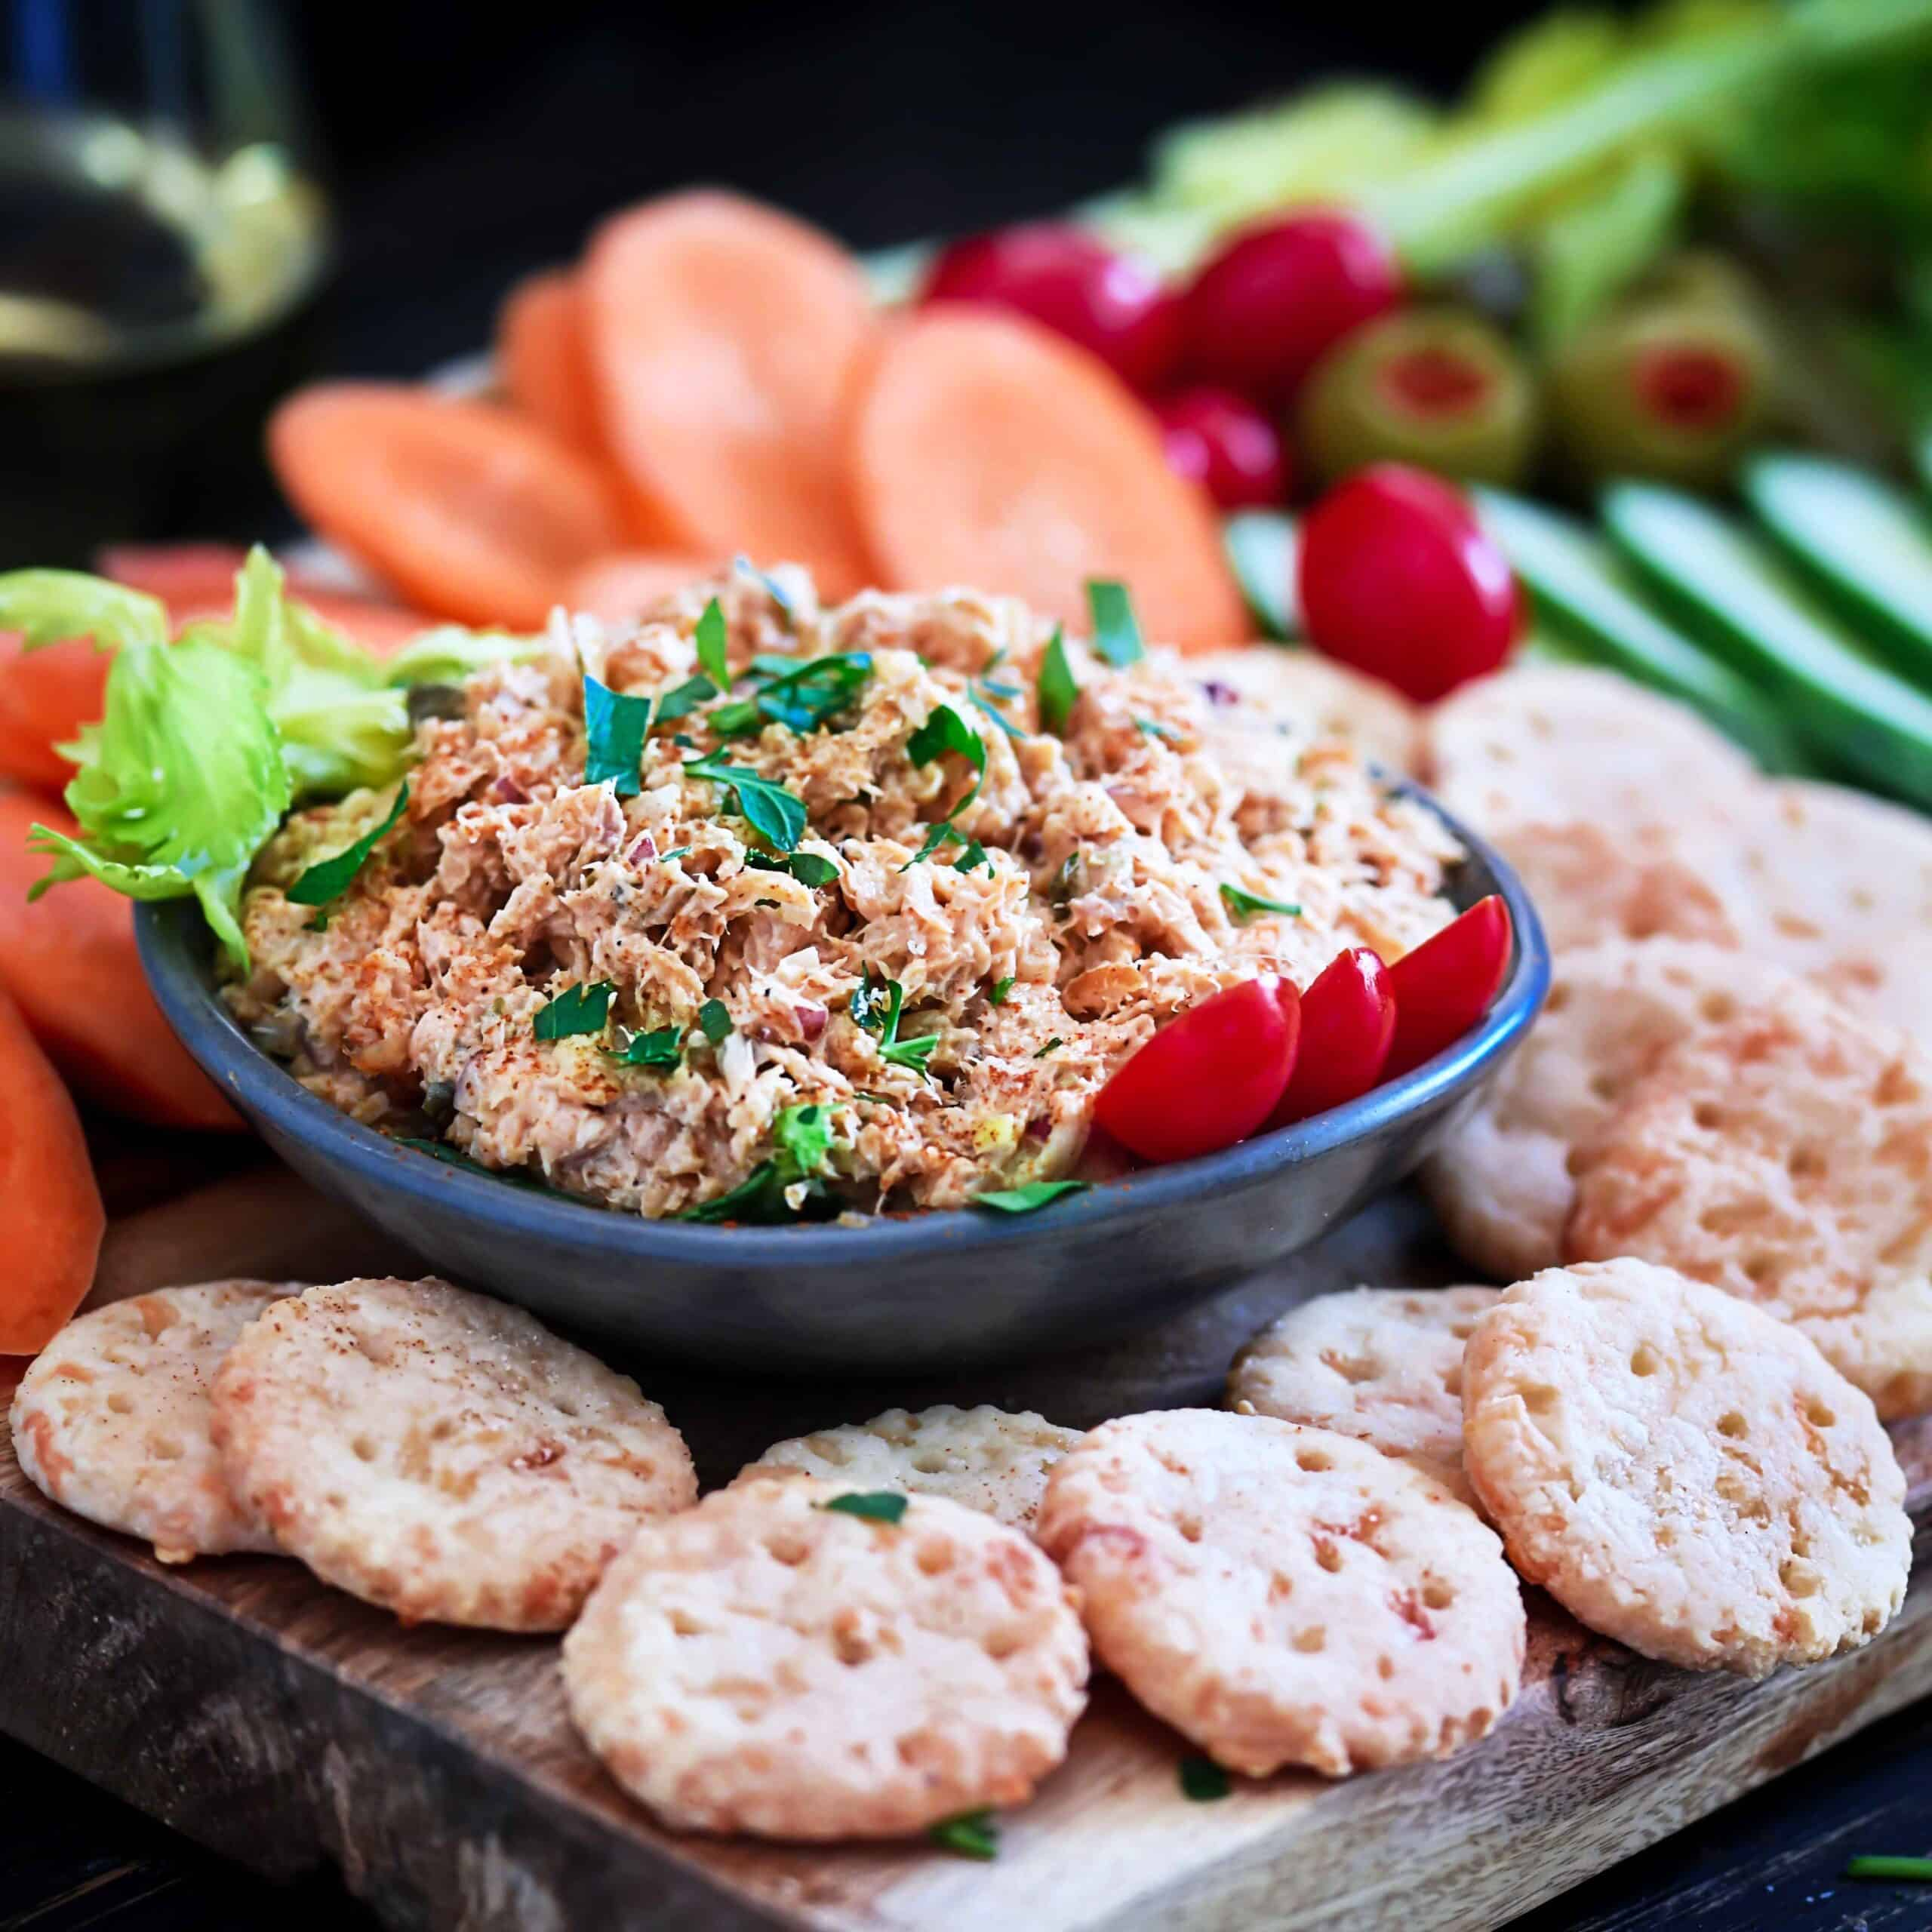 Spicy Smoked Trout Dip